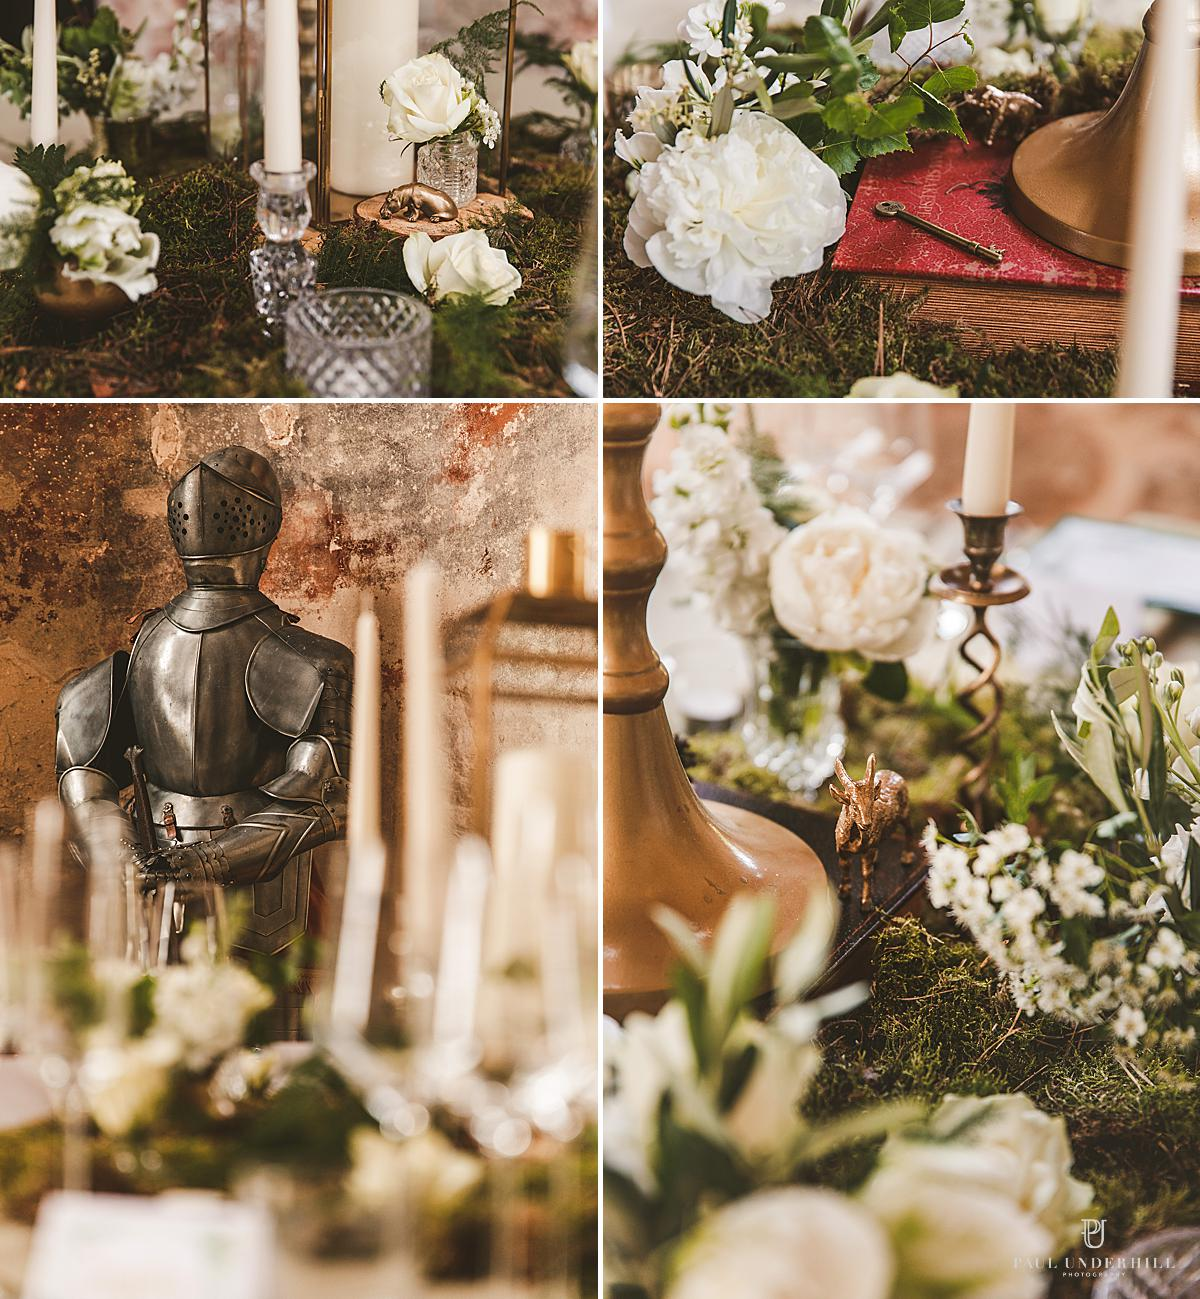 Lulworth Castle wedding decorations